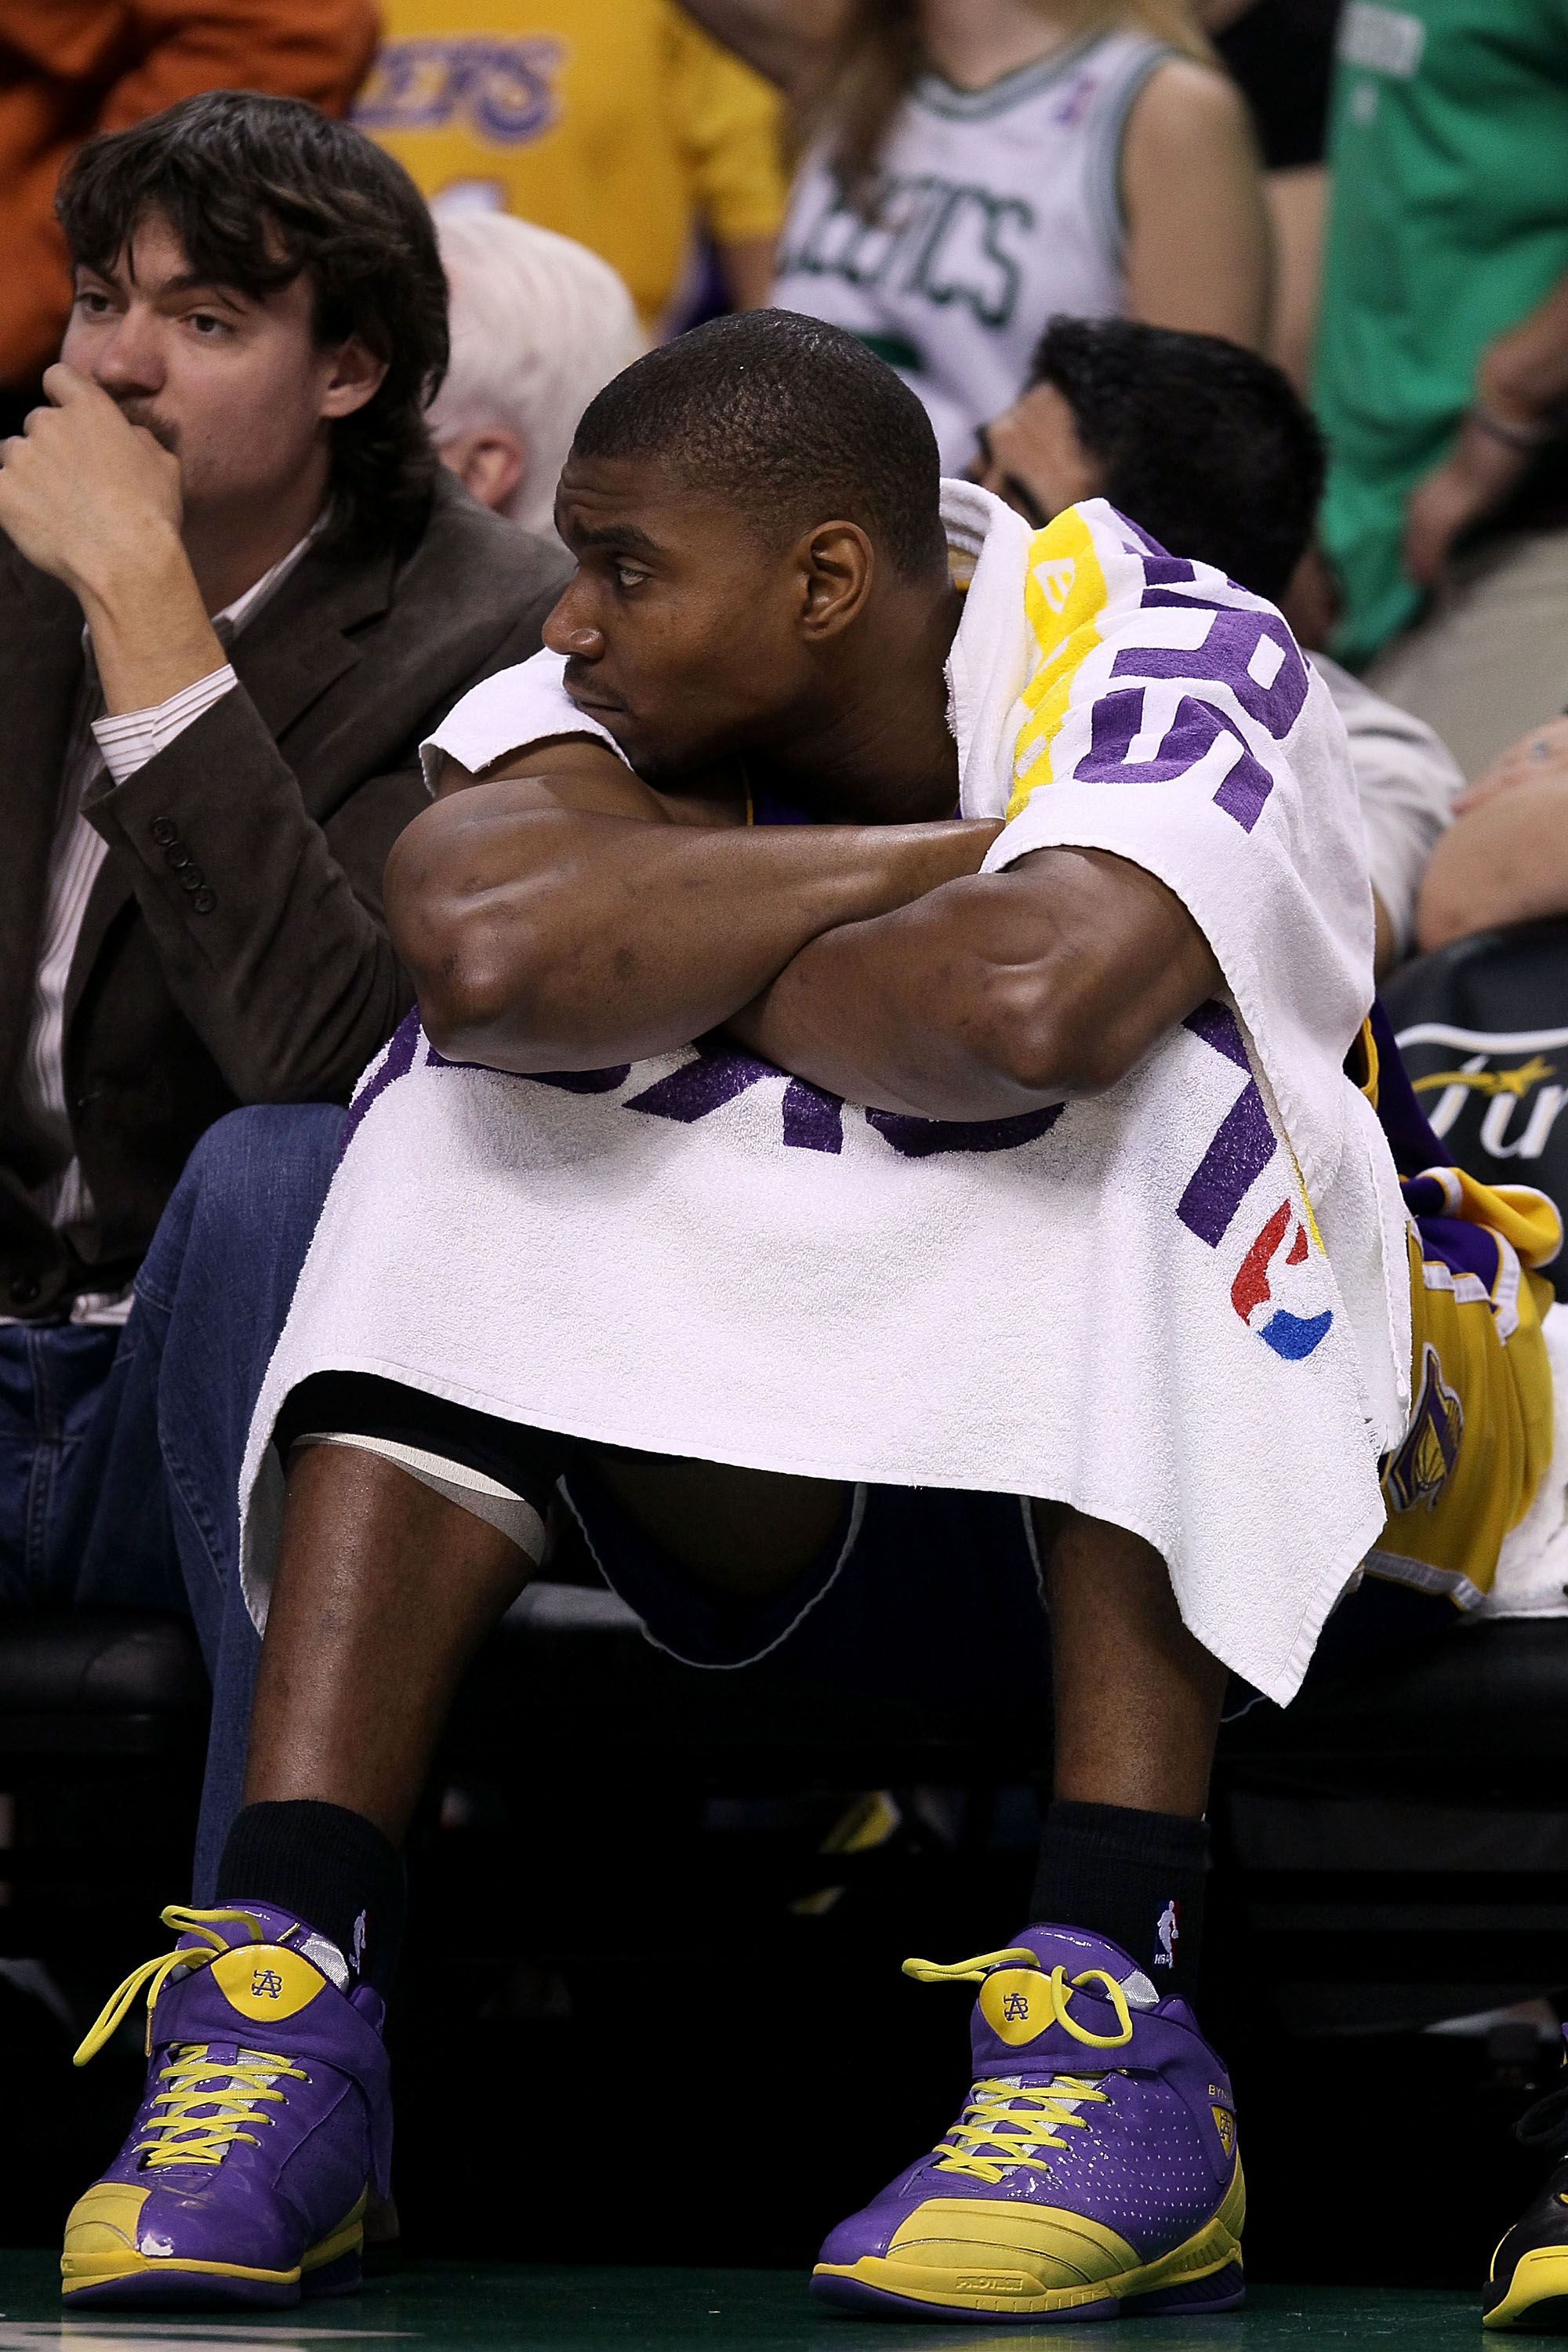 BOSTON - JUNE 10:  Andrew Bynum #17 of the Los Angeles Lakers sits on the bench near the end of the Lakers' loss to the Boston Celltics during Game Four of the 2010 NBA Finals on June 10, 2010 at TD Garden in Boston, Massachusetts. NOTE TO USER: User expr